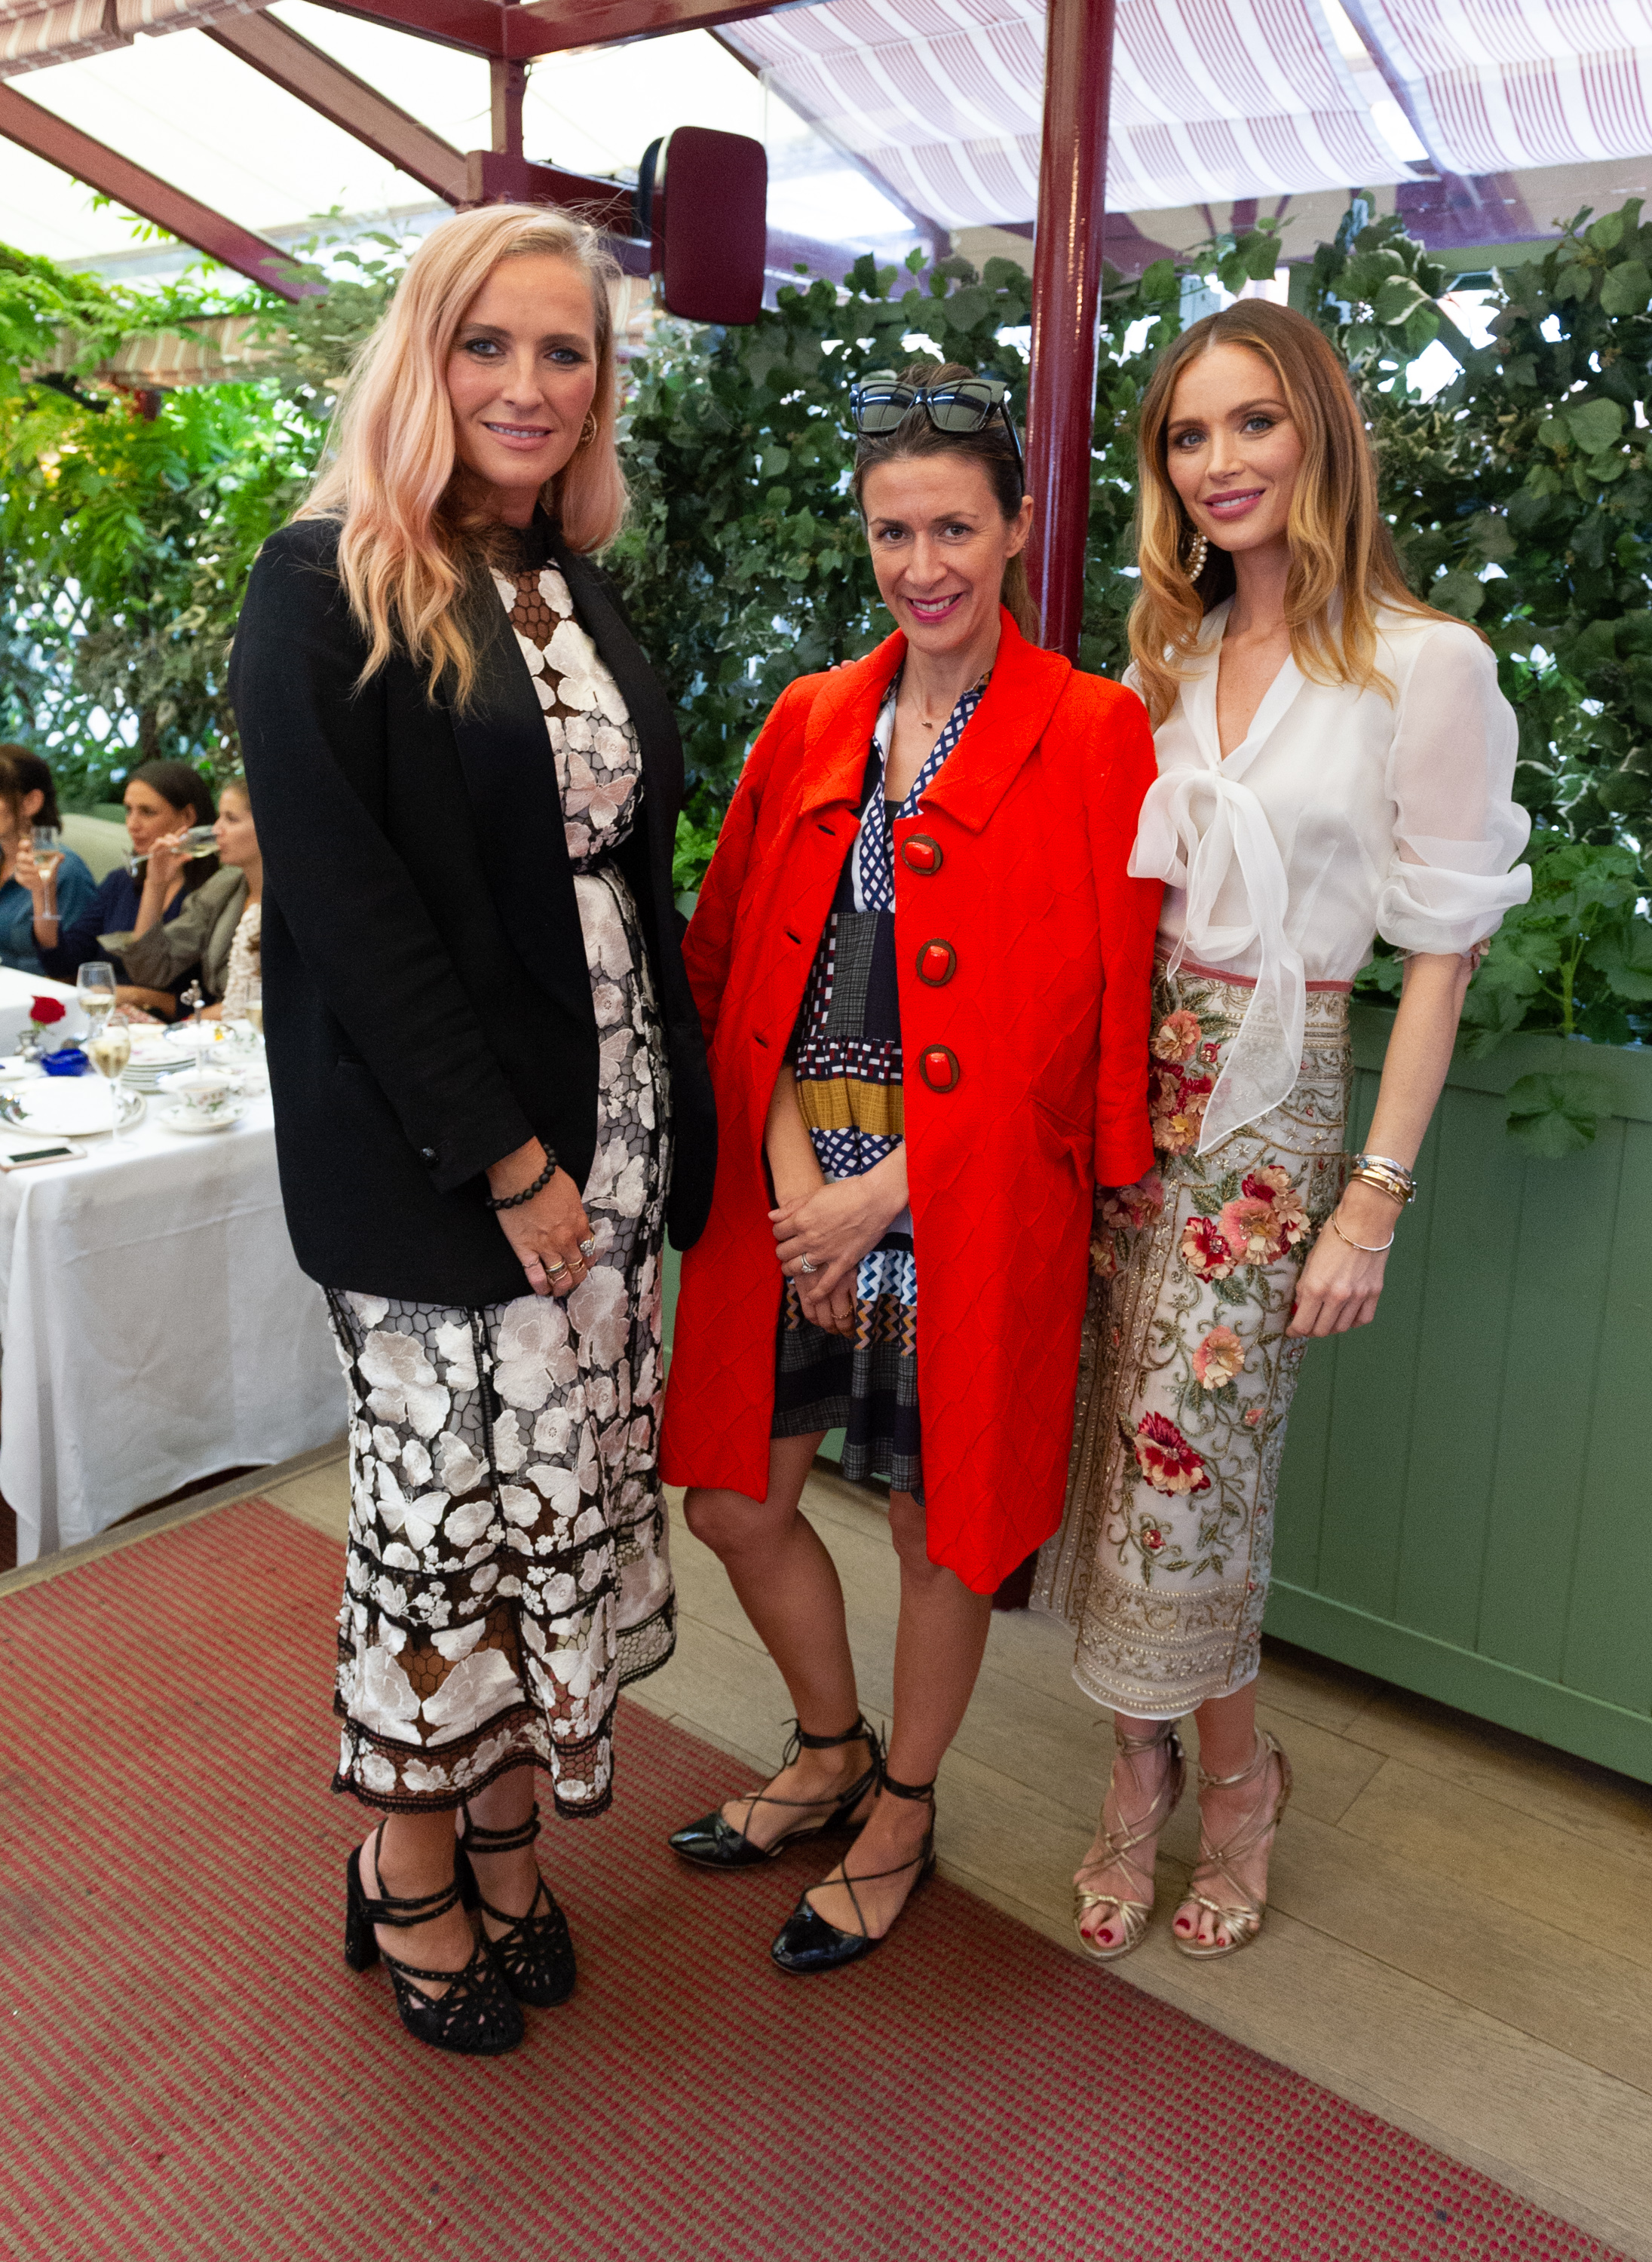 Marchesa founder Georgina Chapman, MINE editor Astrid Joss with Marchesa founder Keren Craig